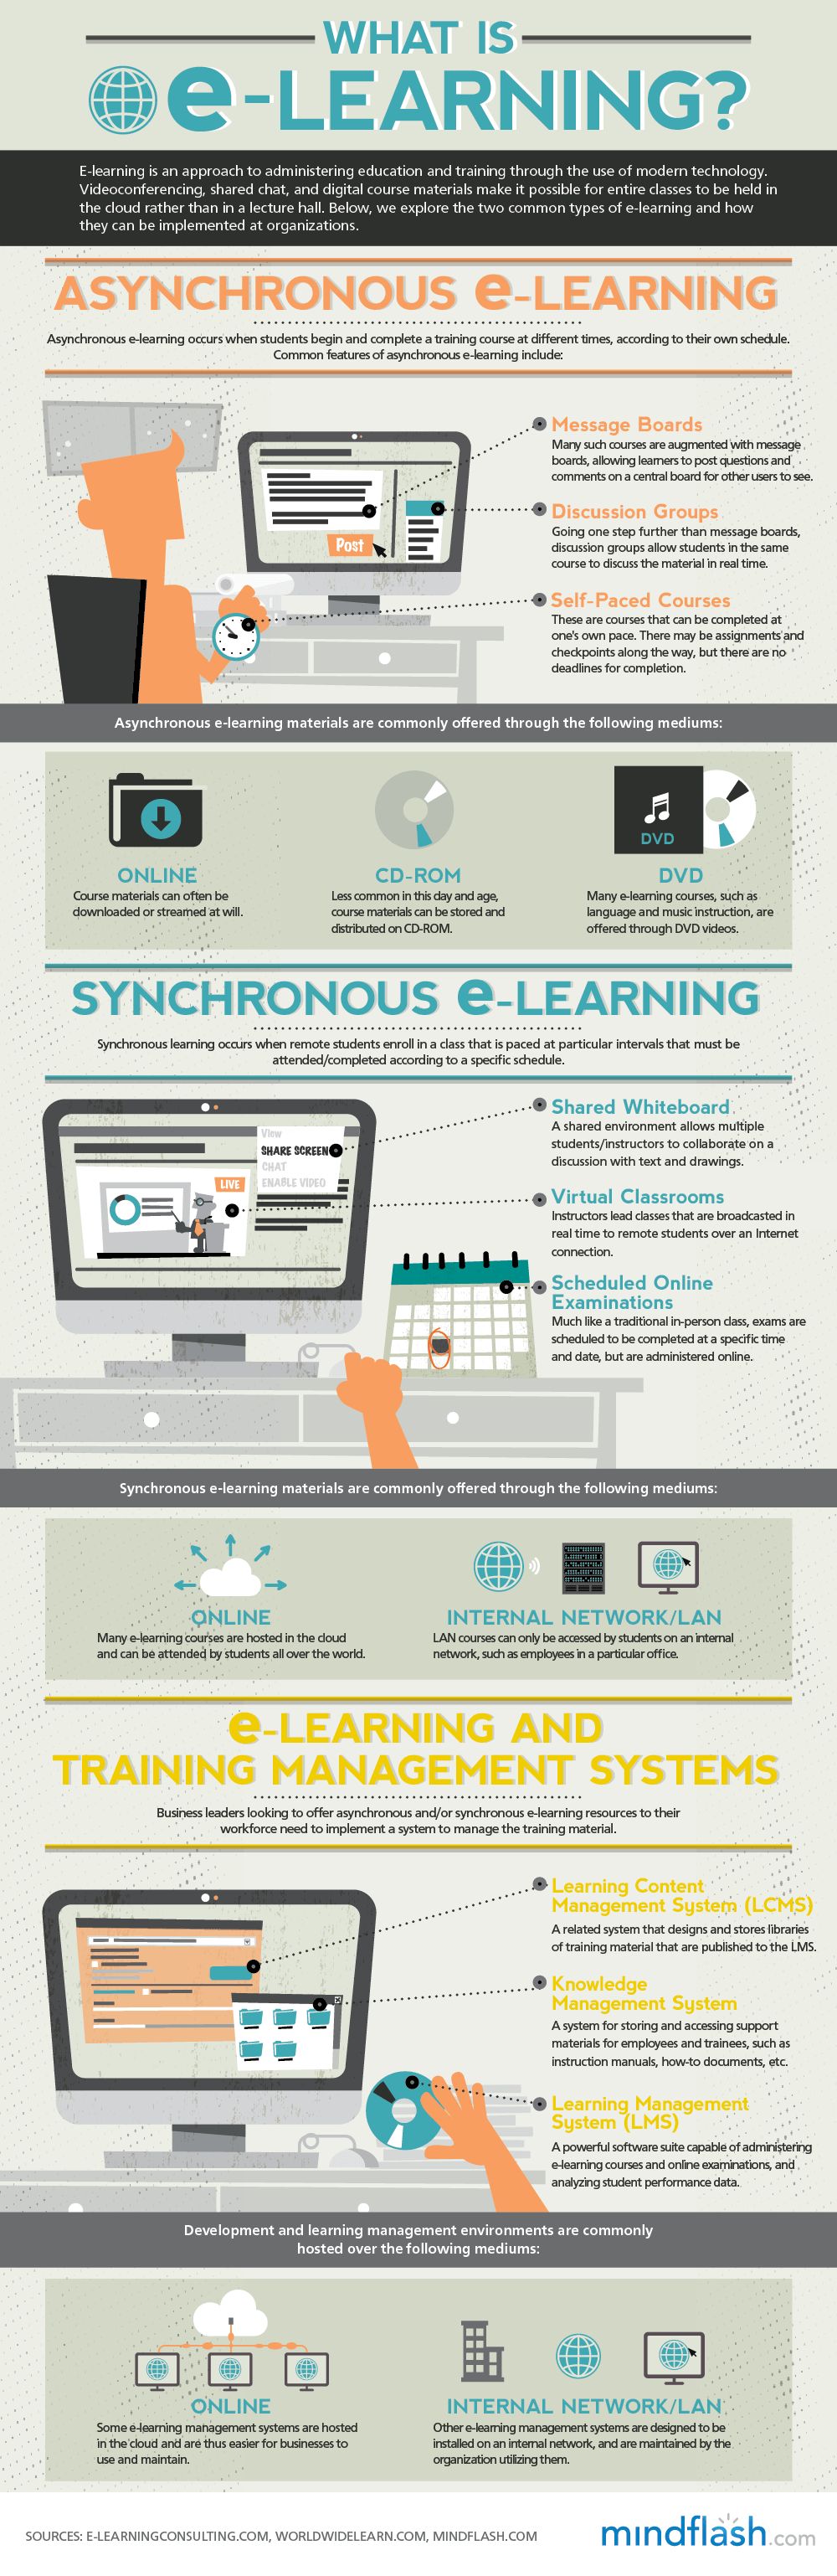 Synchronous-and-Asynchronous-E-Learning-Infographic